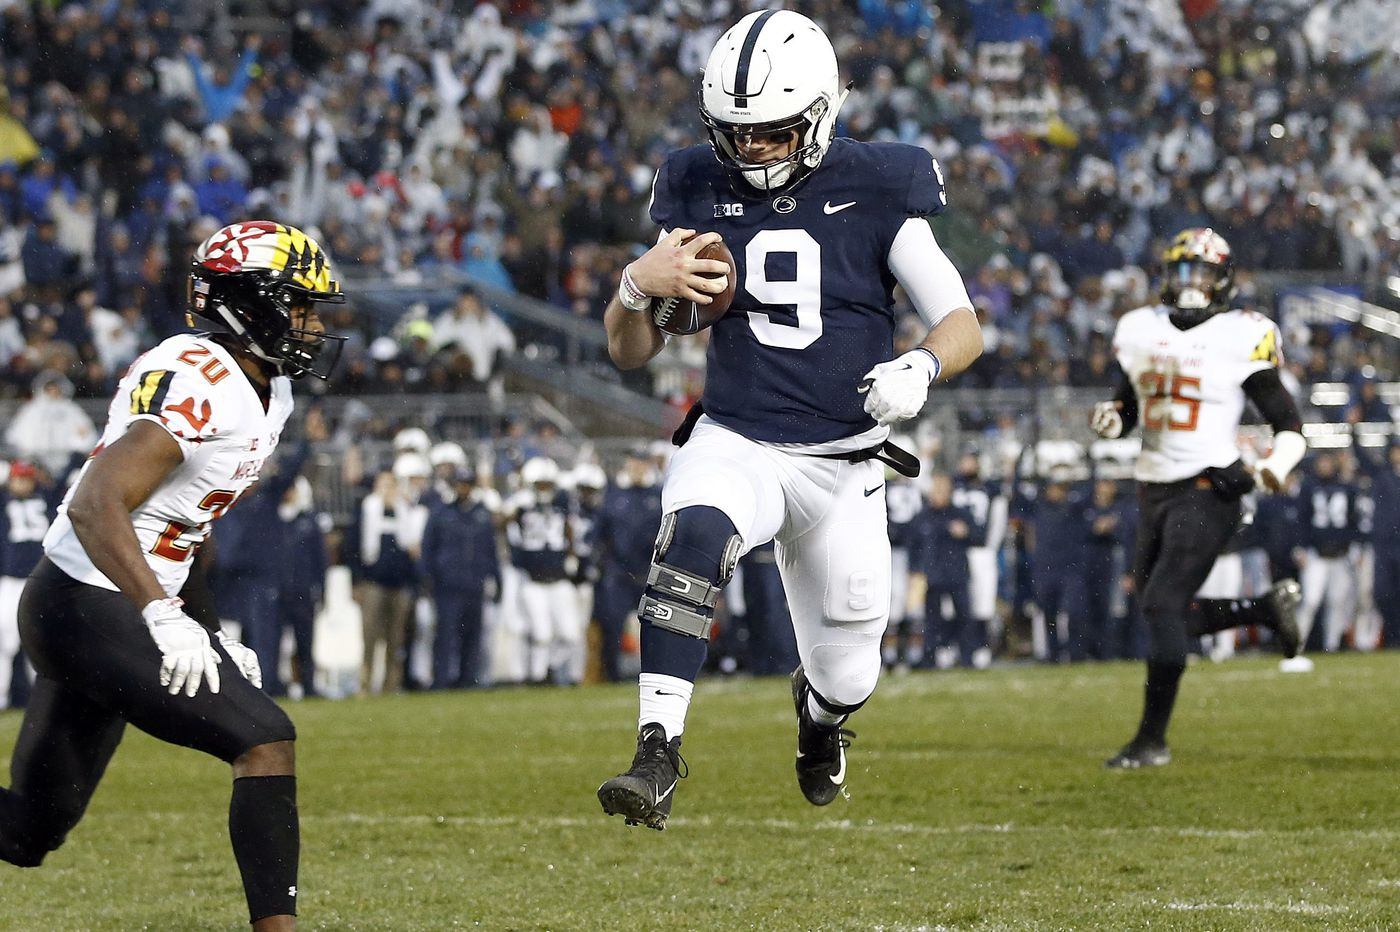 Trace McSorley leads Penn State to 38-3 win over Maryland in his final game at Beaver Stadium